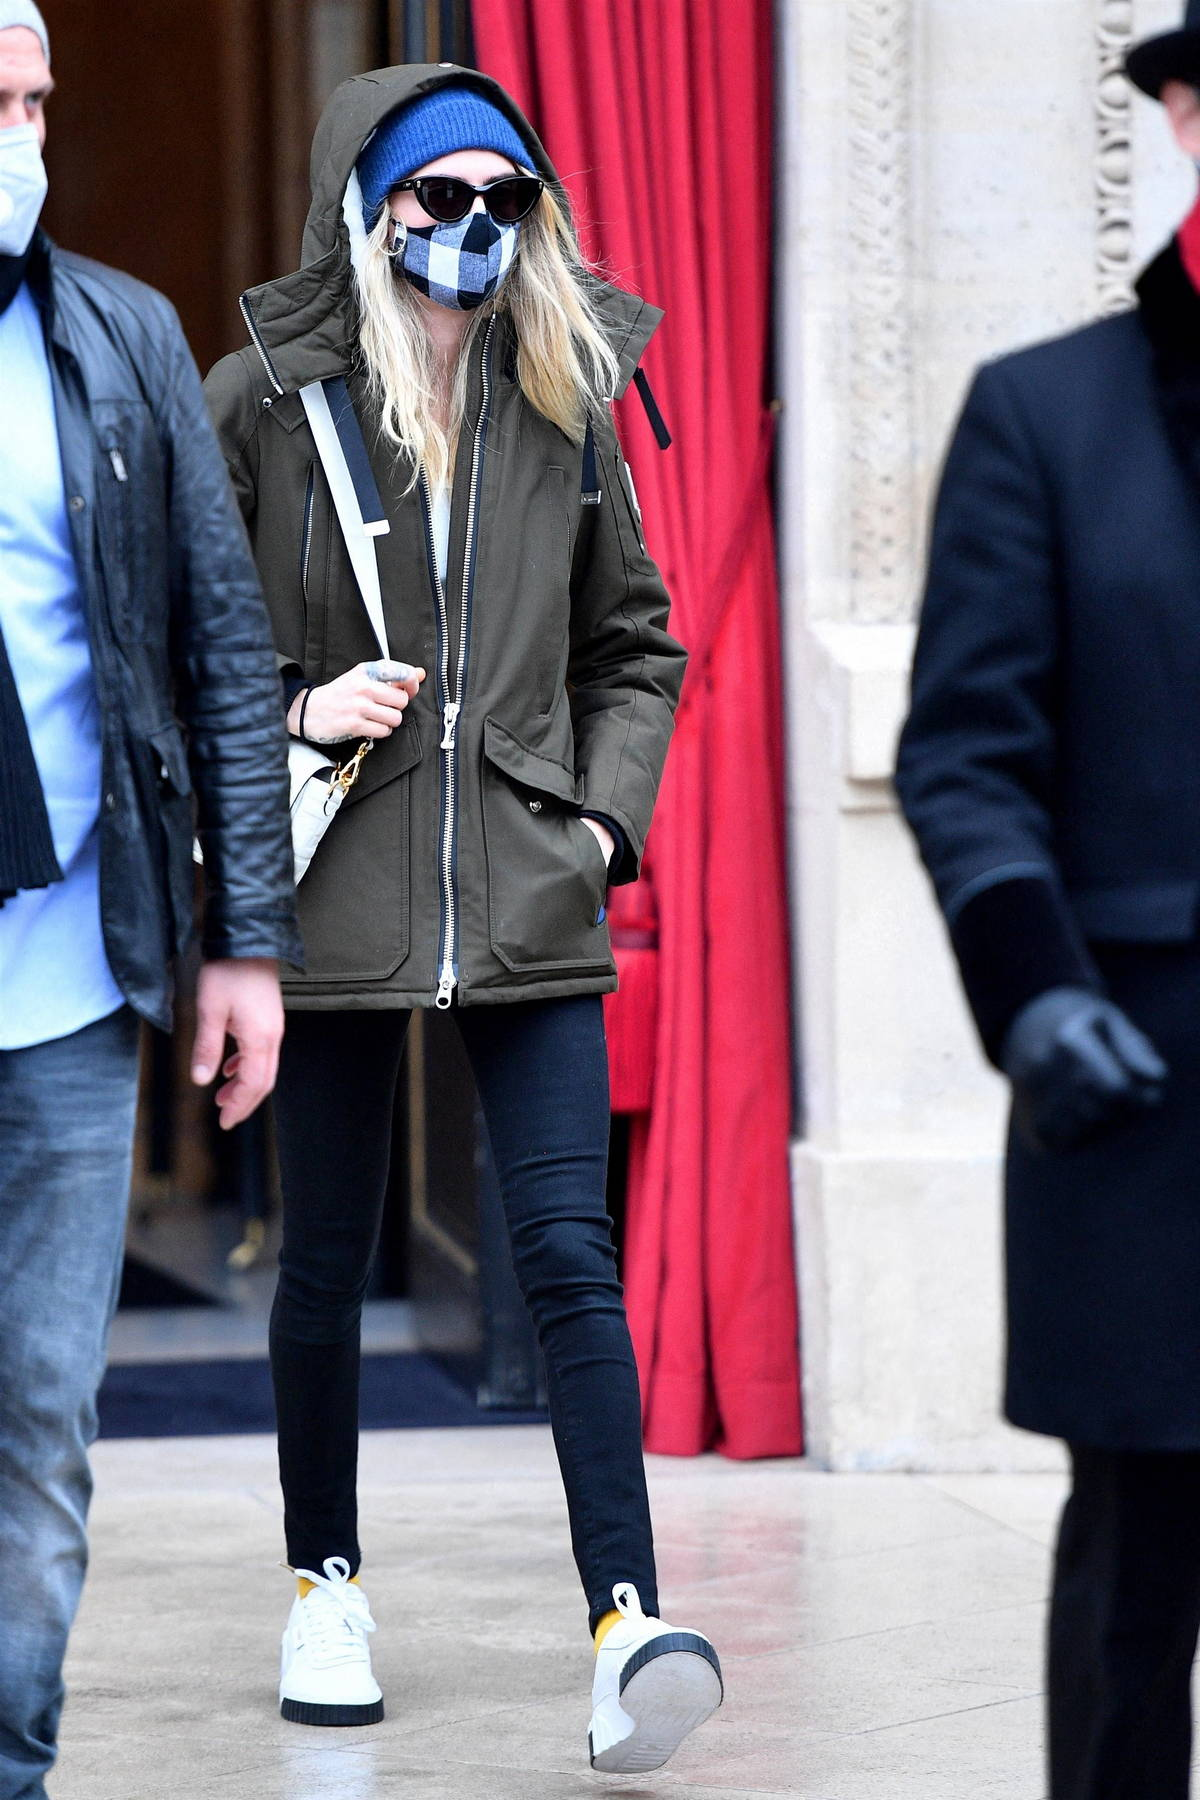 Cara Delevingne keeps it low key as she stops out of La Reserve hotel in Paris, France